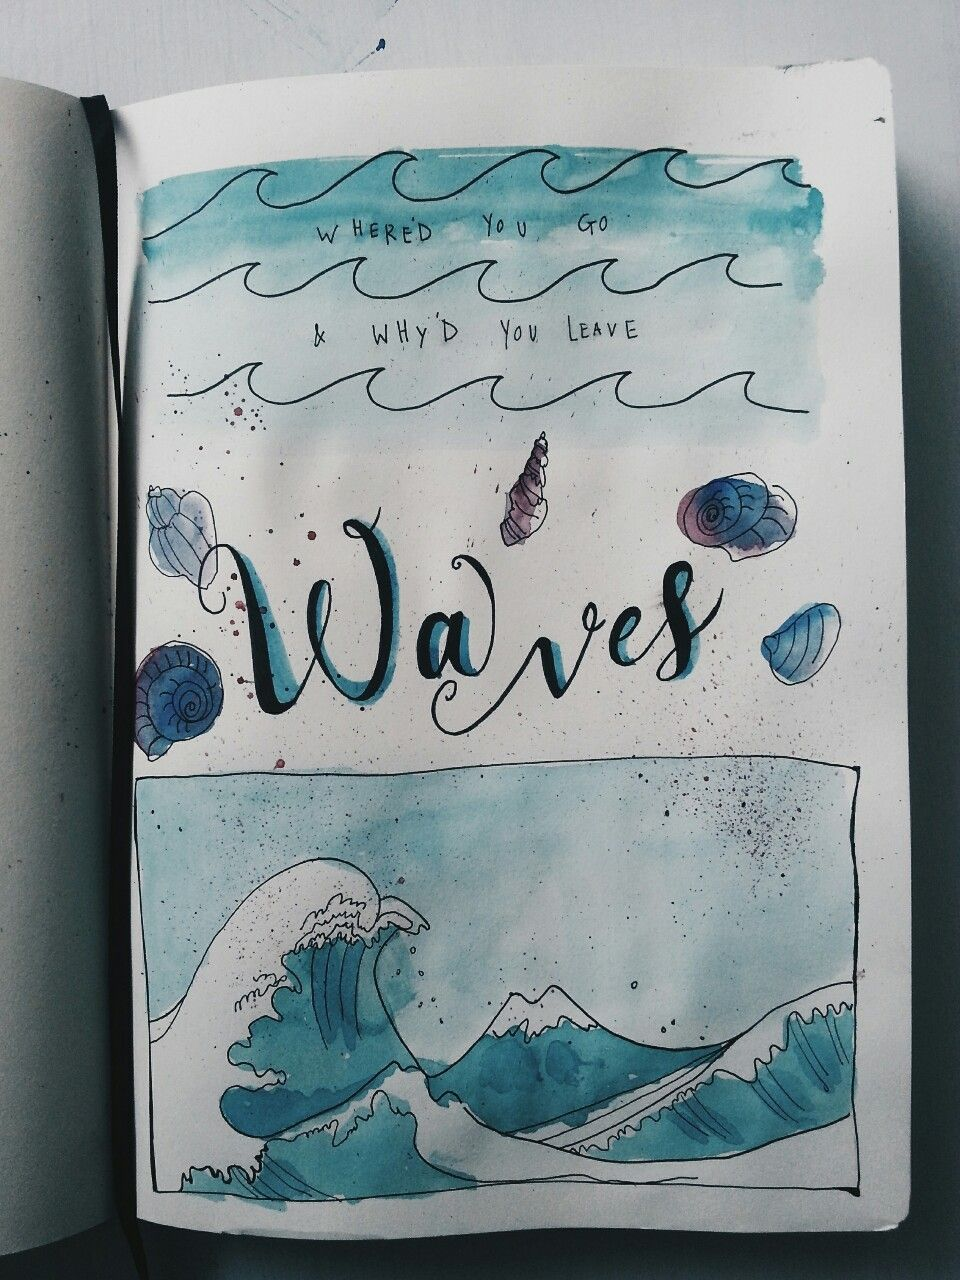 Watercolour Waves Tumblr Watercolor Journal Art Journal Pages